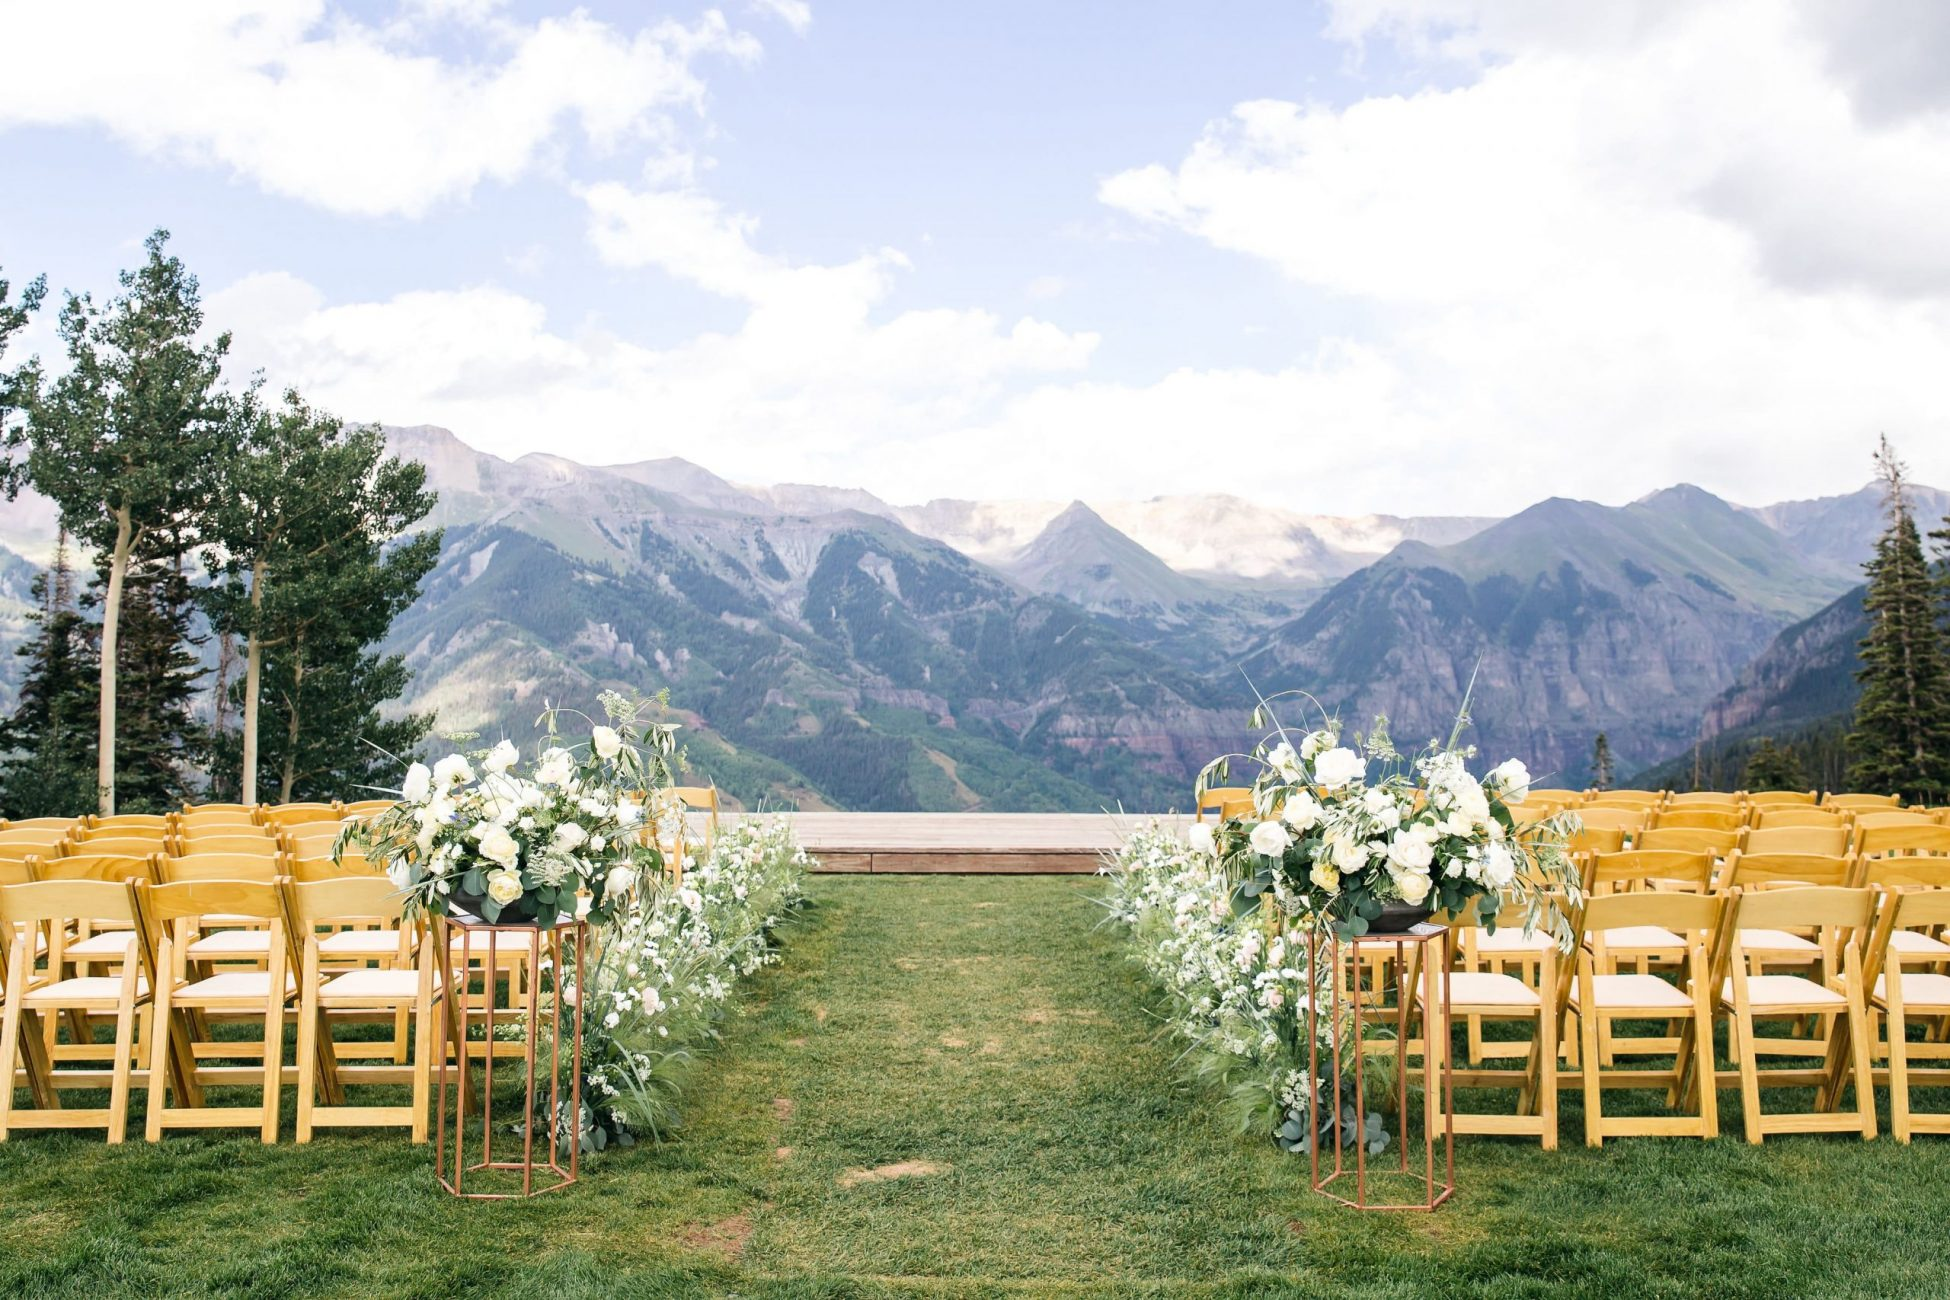 elysium-productions-telluride-wedding-ceremony-site-telluride-valley-colorado-weddings-san-sophia-overlook-gorrono-ranch-m&r